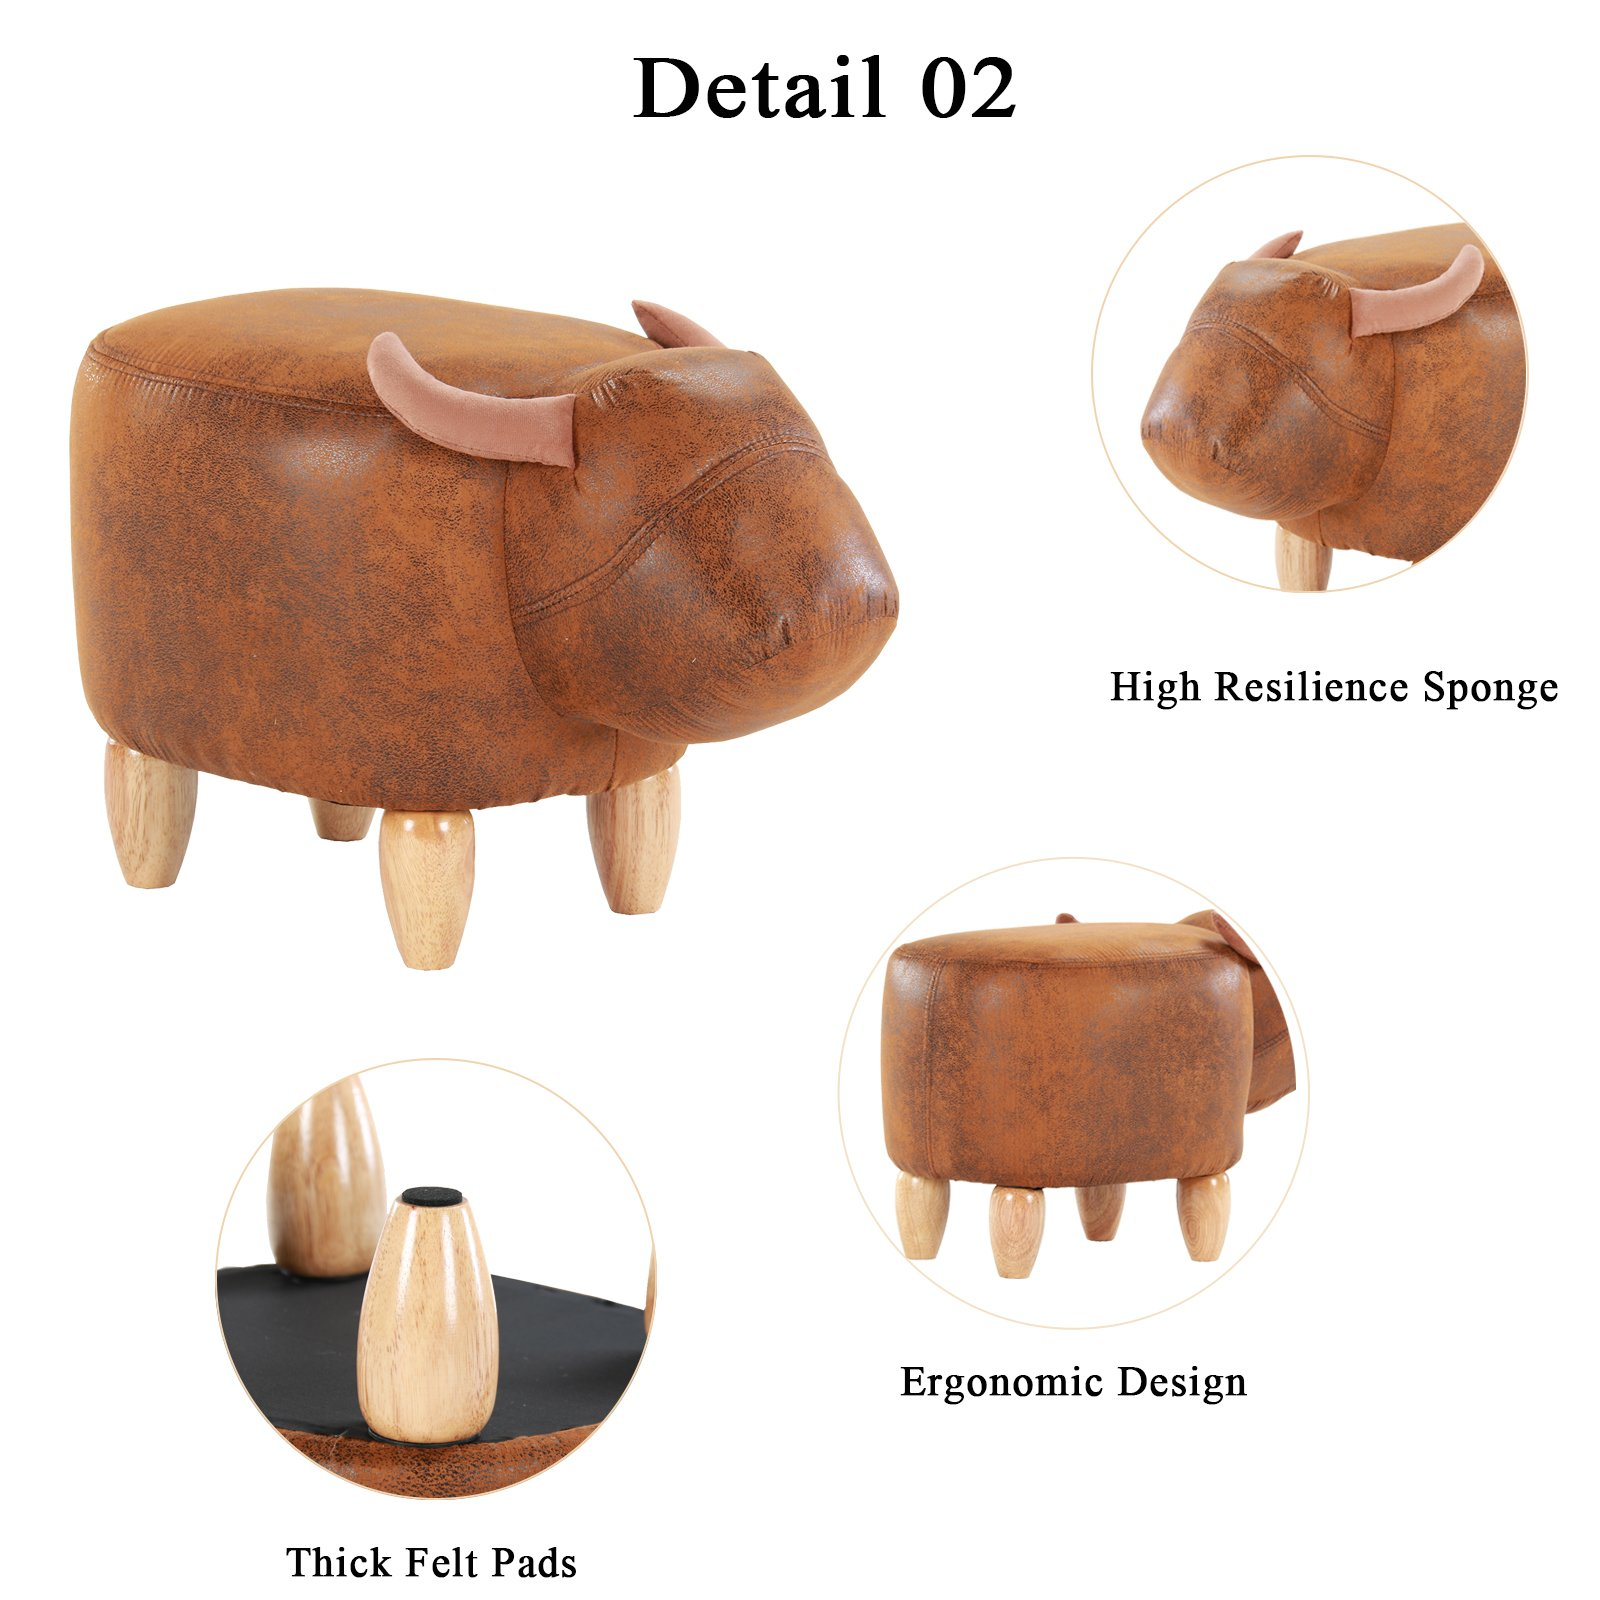 Artechworks Upholstered Ride-On Animal Ottoman Footrest Stool with Vivid Adorable Animal-Like Features,Perfect for Gift, Changing Shoes, Decoration, Toys, Without Storage(Brown Buffalo) by Artechworks (Image #4)